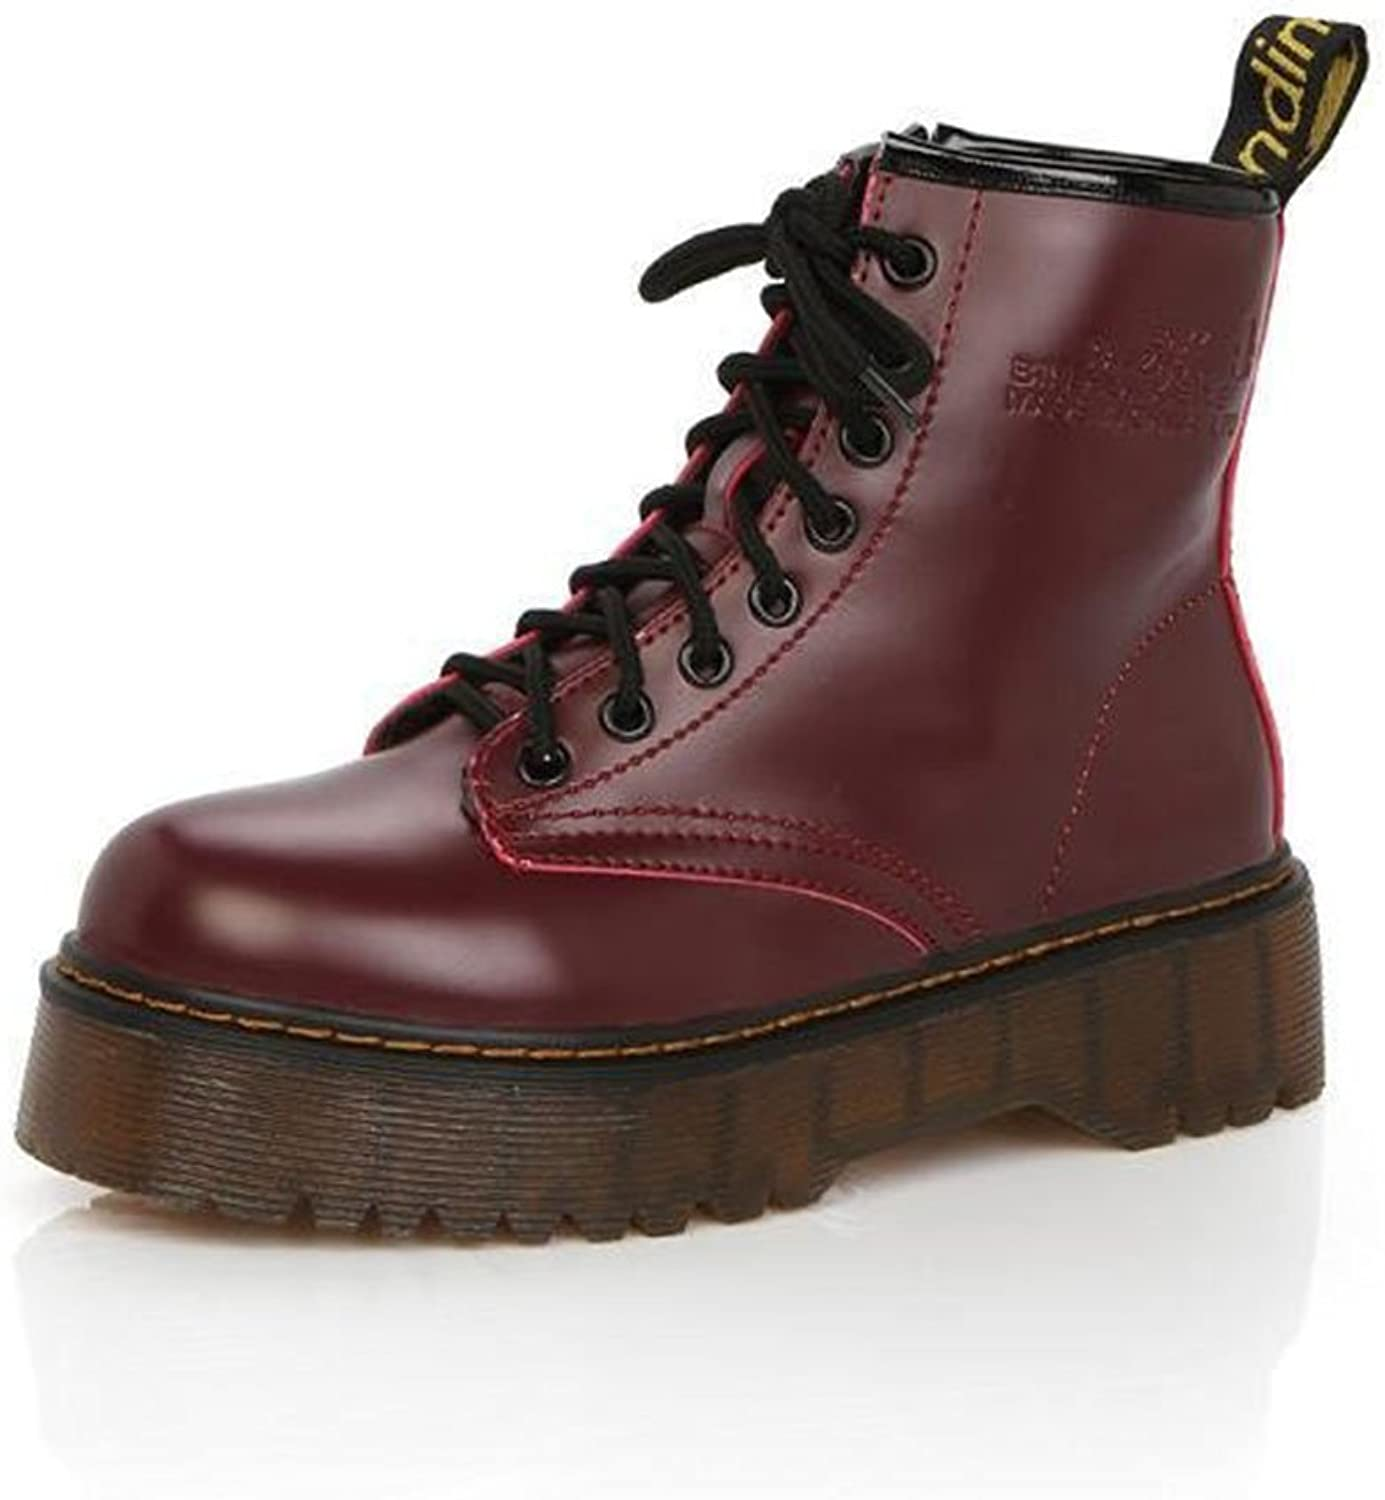 HEMAY Women's PU Leather Boots Thick-Soled Lace-up Martin Boots